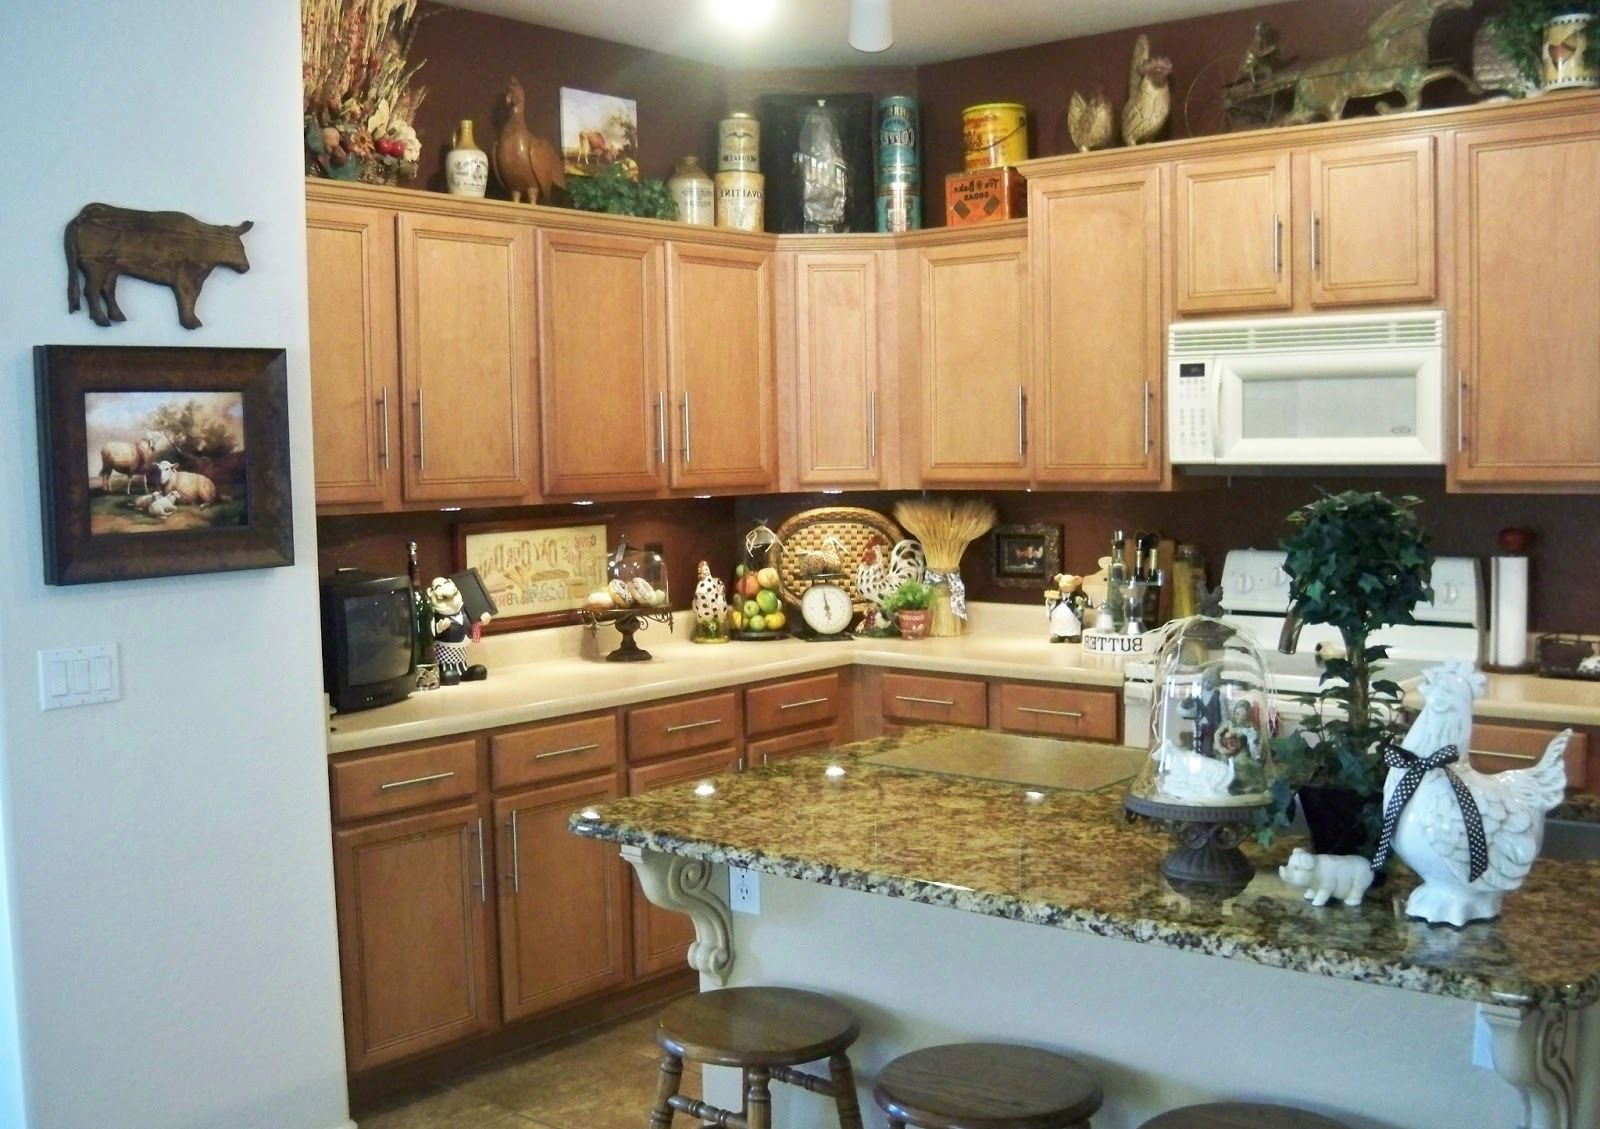 Rooster s Kitchen Cabinets - Kitchen Design Ideas on